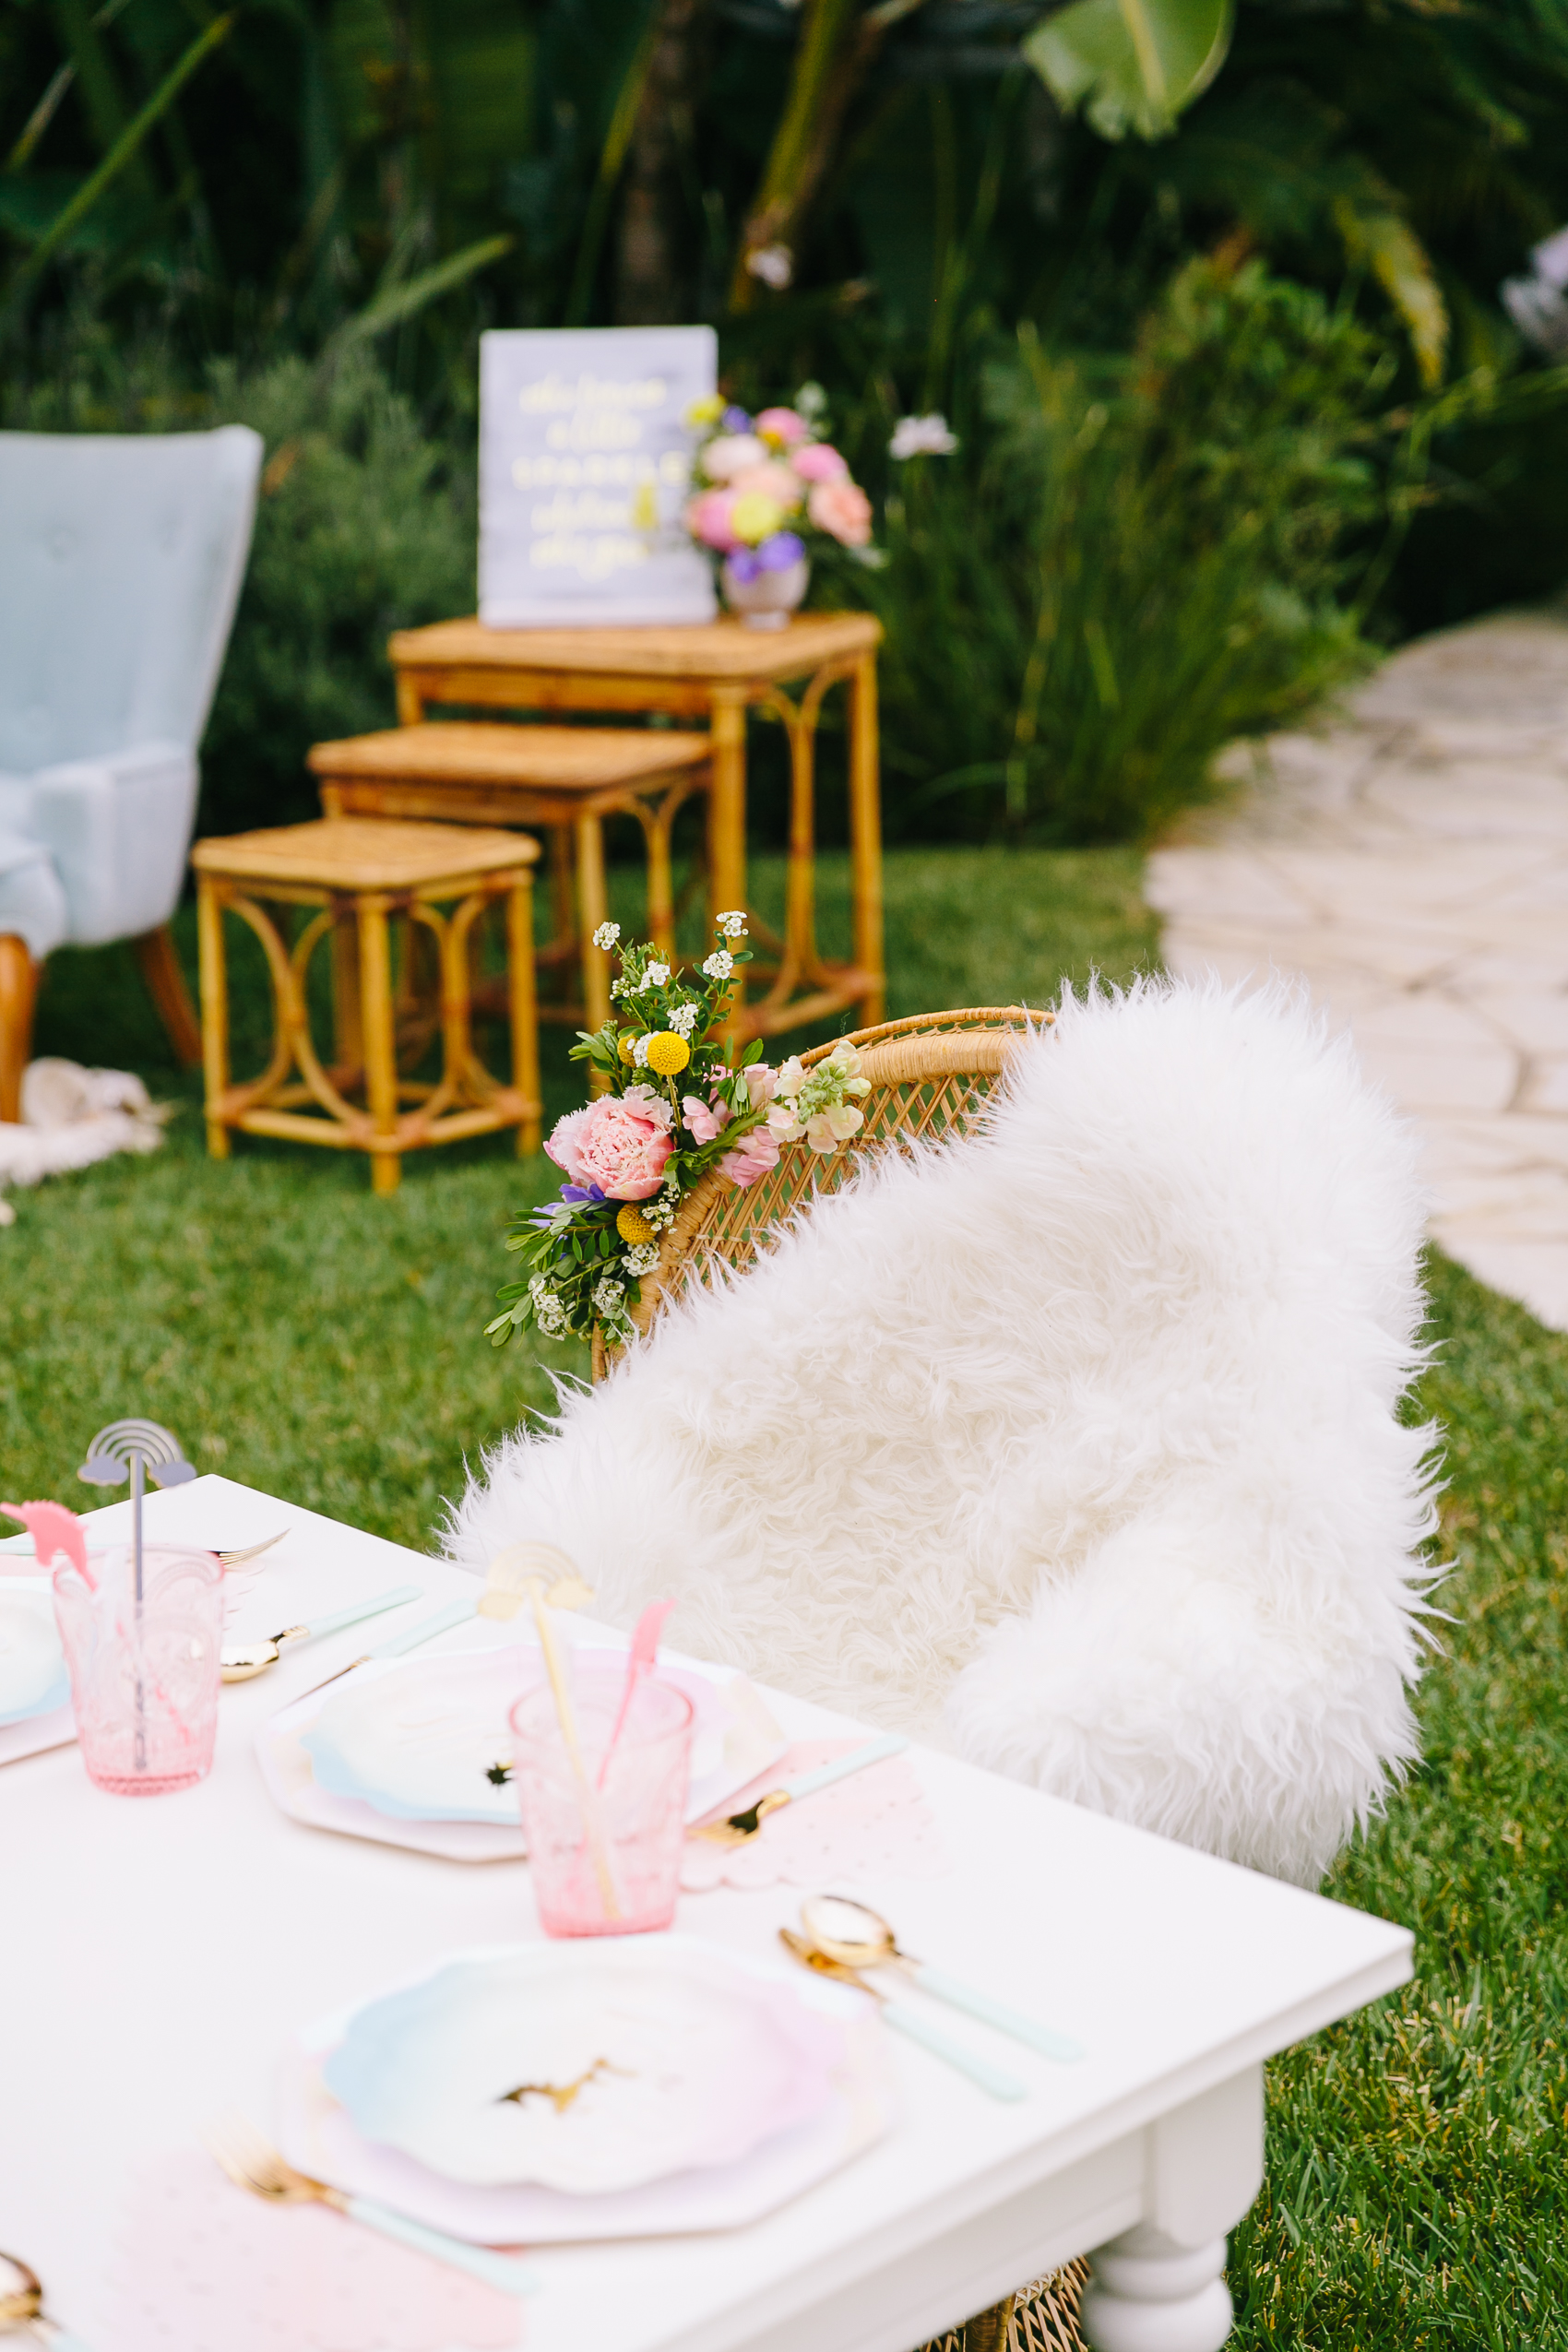 Los_Angeles_Family_Photographer_Luxury_Childrens_Party_Beverly_Hills_Unicorn_Birthday_Party-0073.jpg